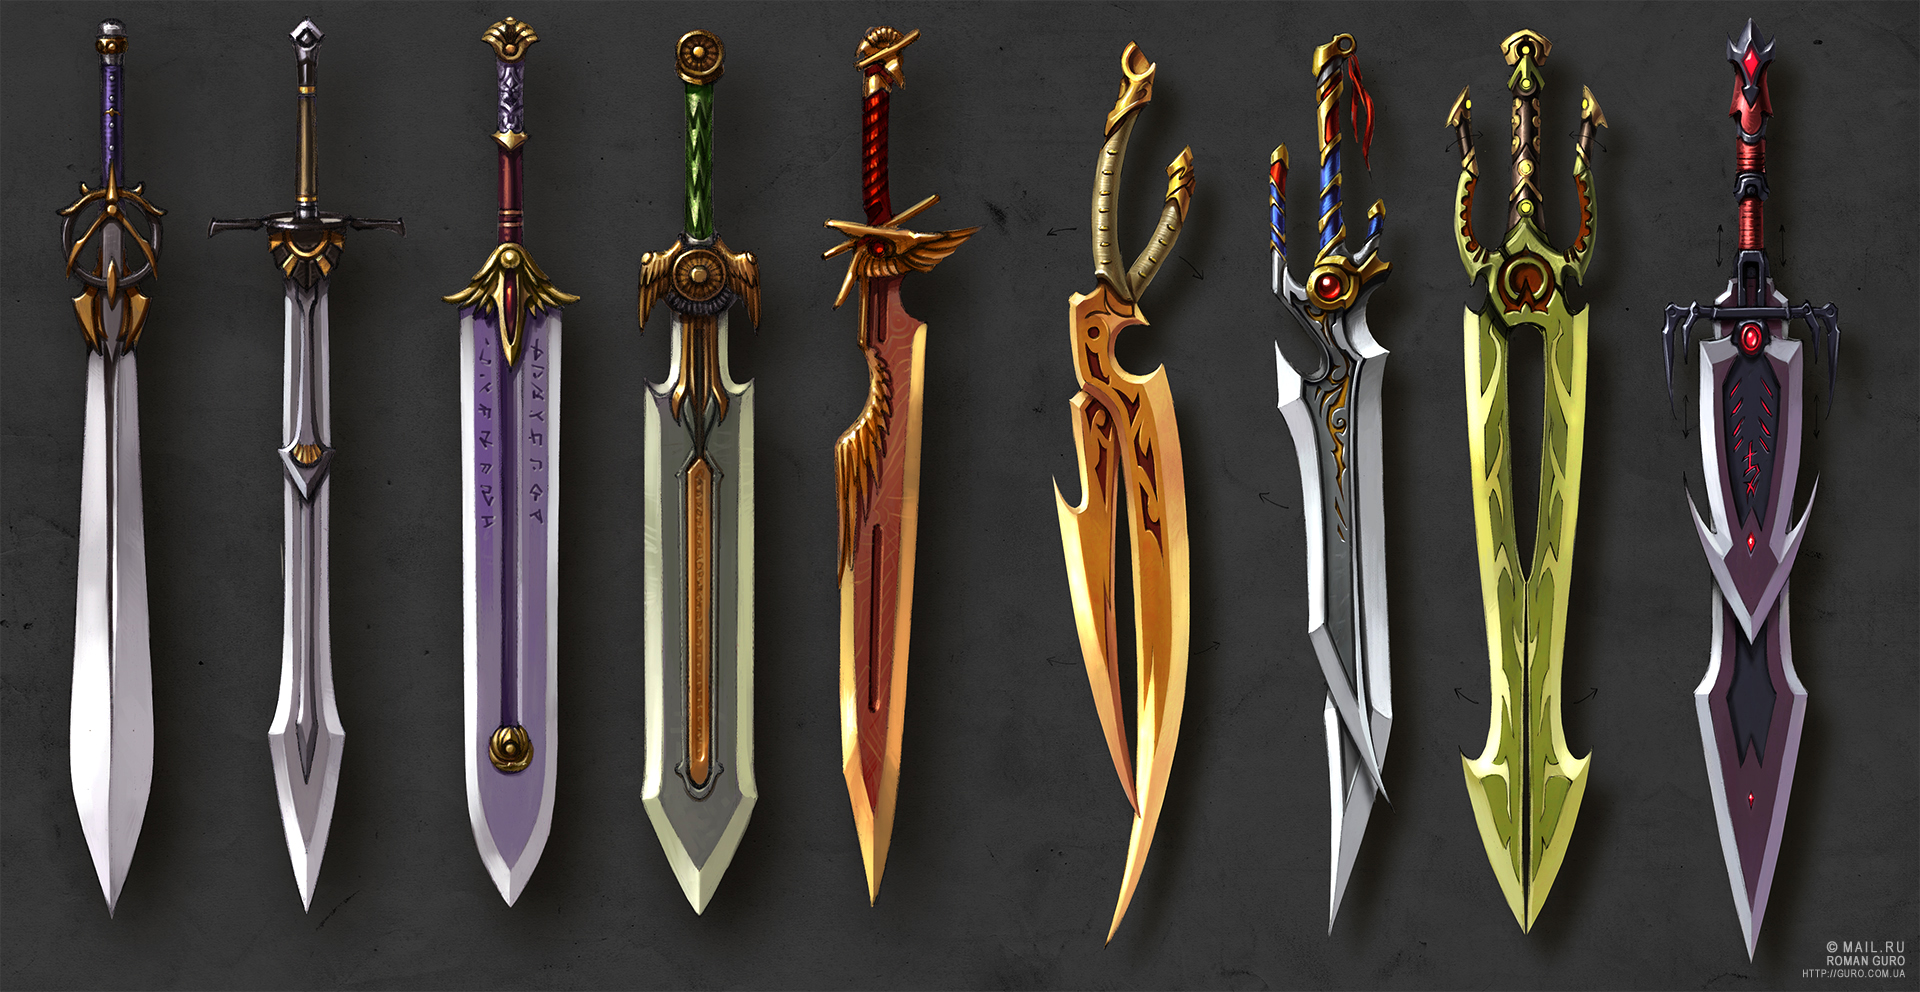 Two-handed swords and Scissors-swords concept by Guro on DeviantArt